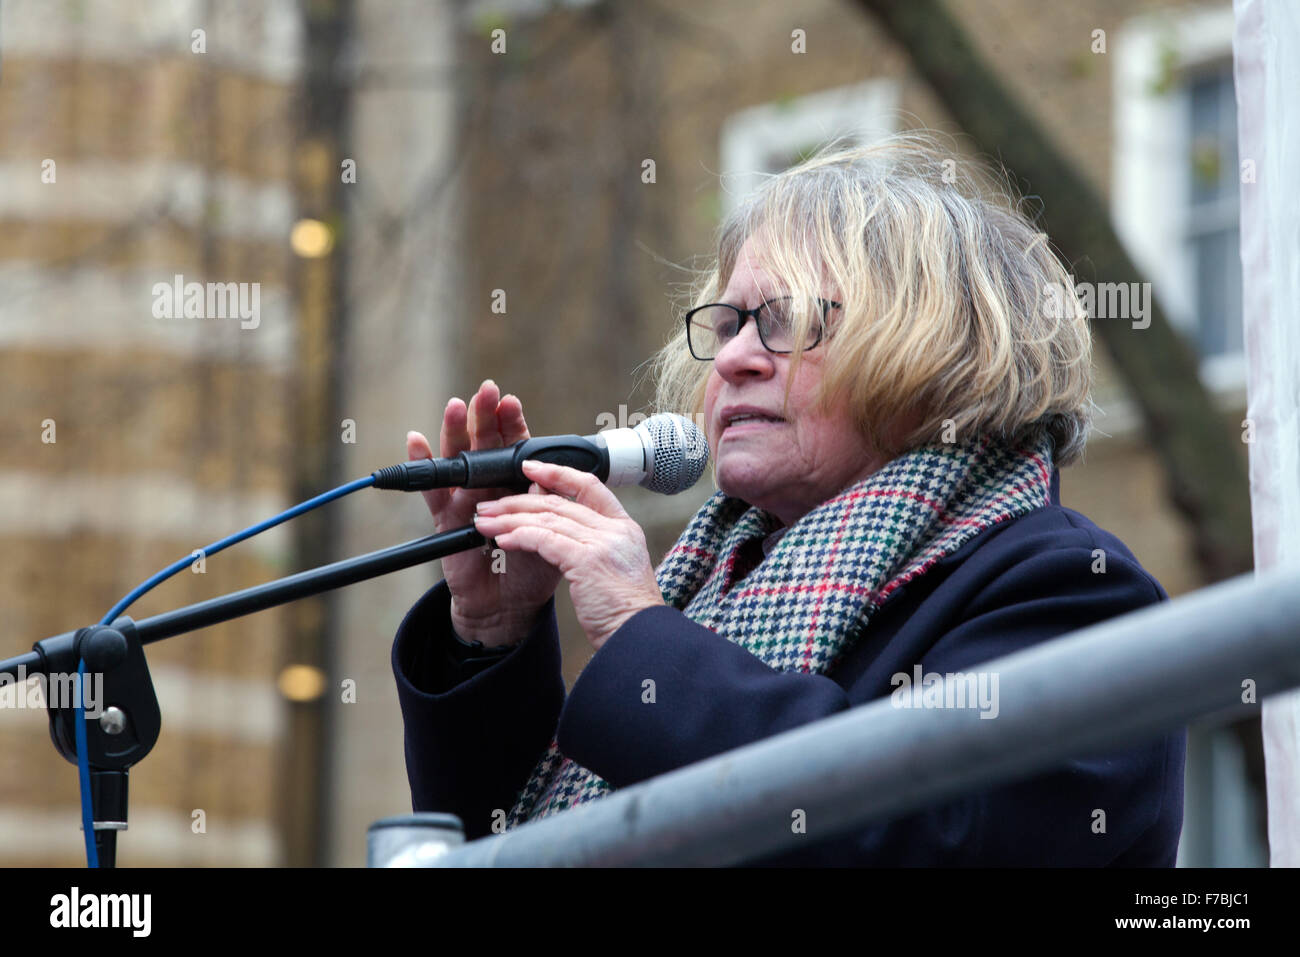 London, UK. 28. November 2015. Lindsey Deutsch, Obmann des stoppen der Kriegskoalition, Adressen, die der Protest Stockbild